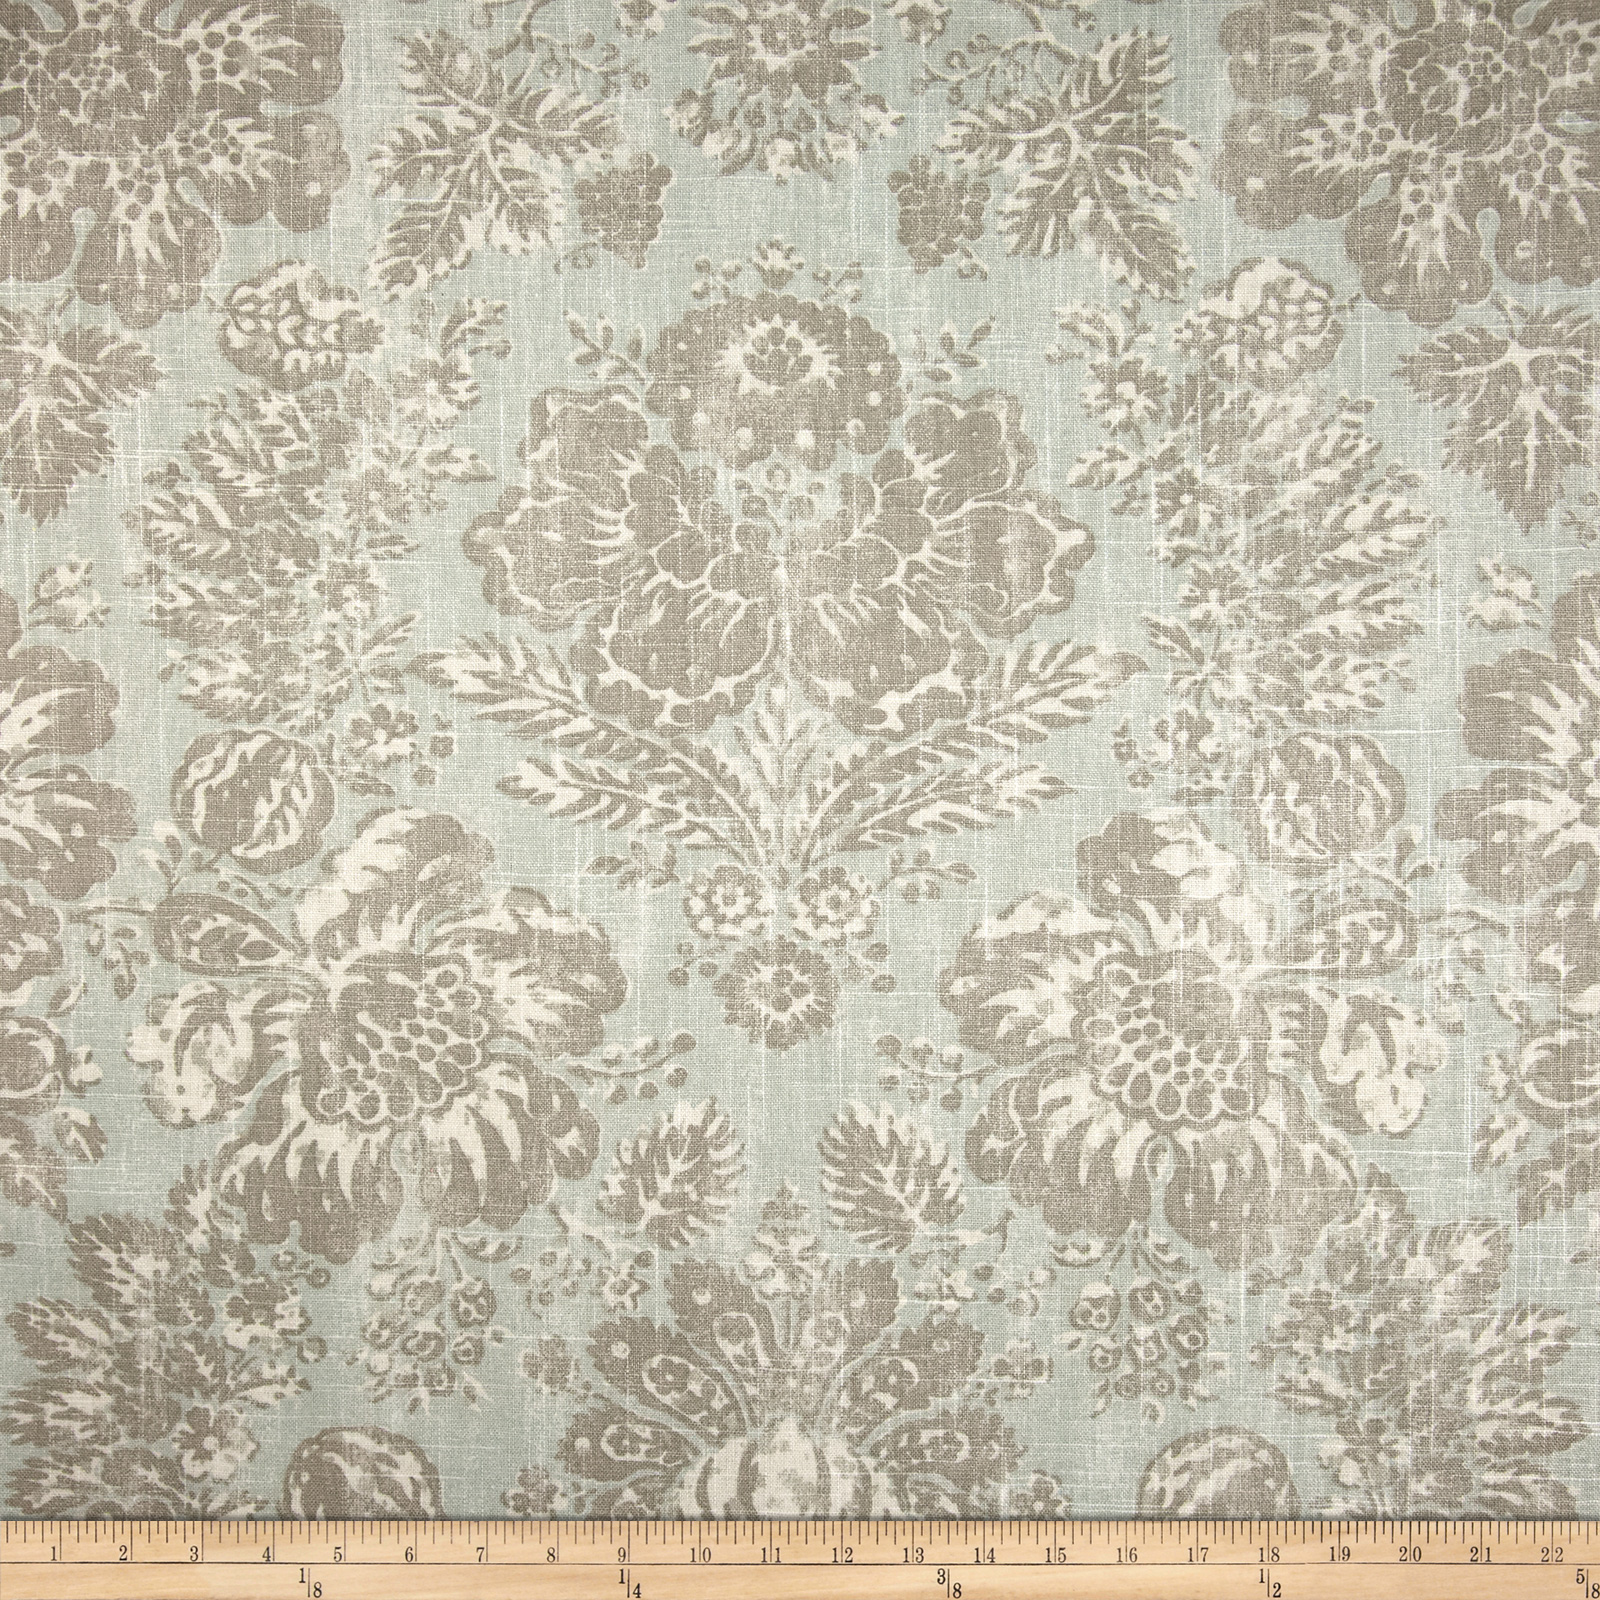 Braemore Keepsake Linen Blend Aquamarine Fabric